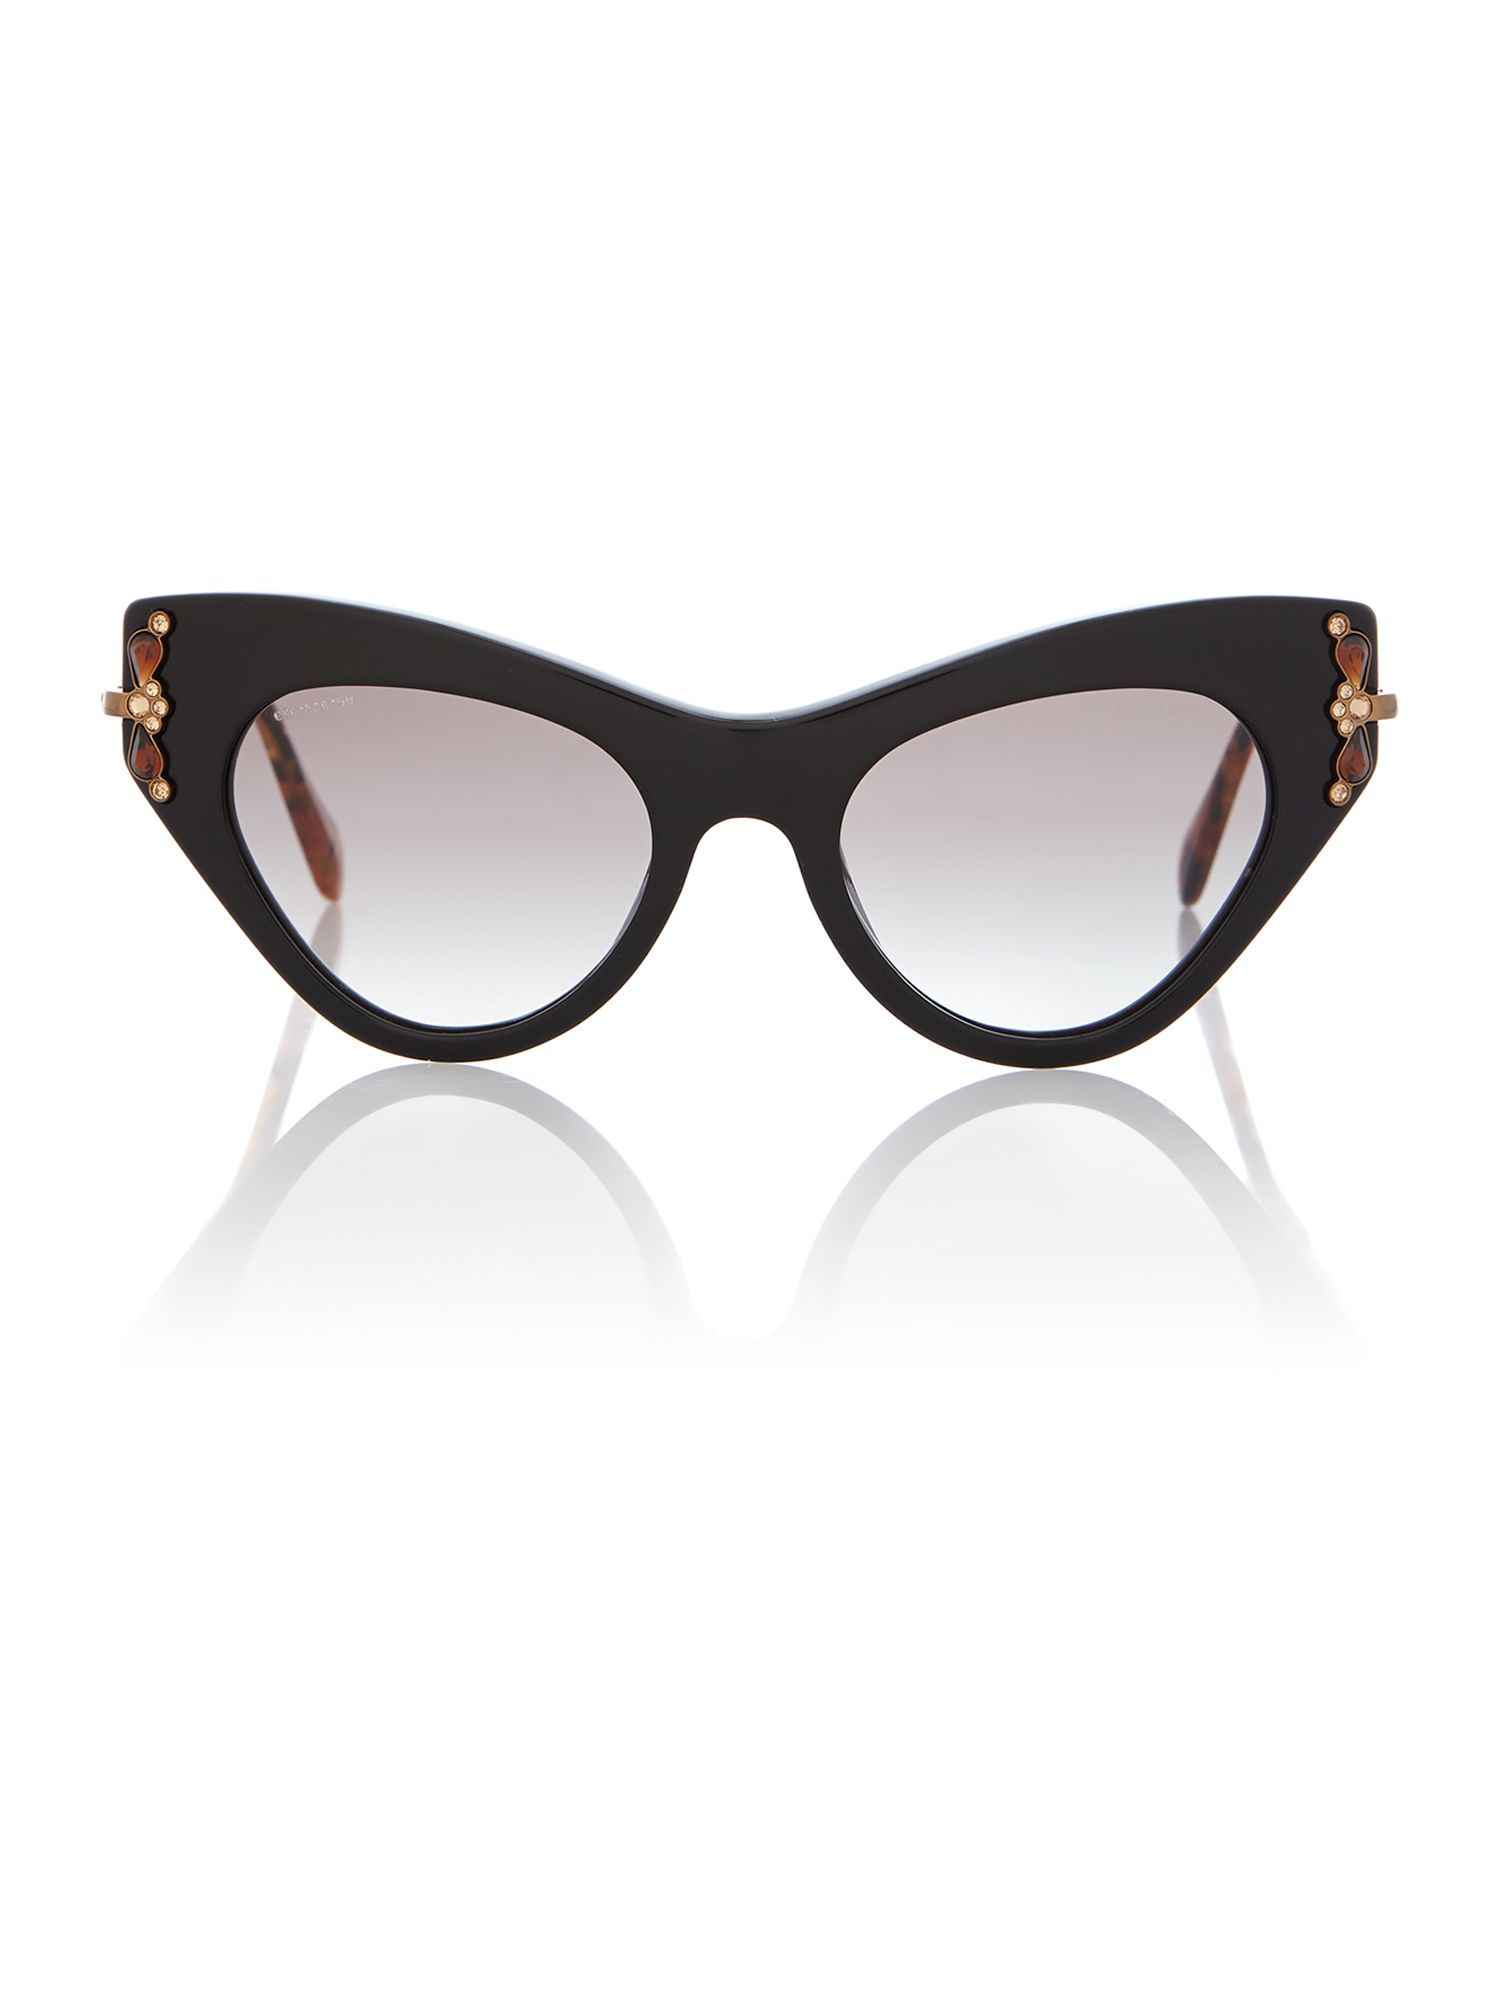 Mu 04ps ladies cat eye sunglasses